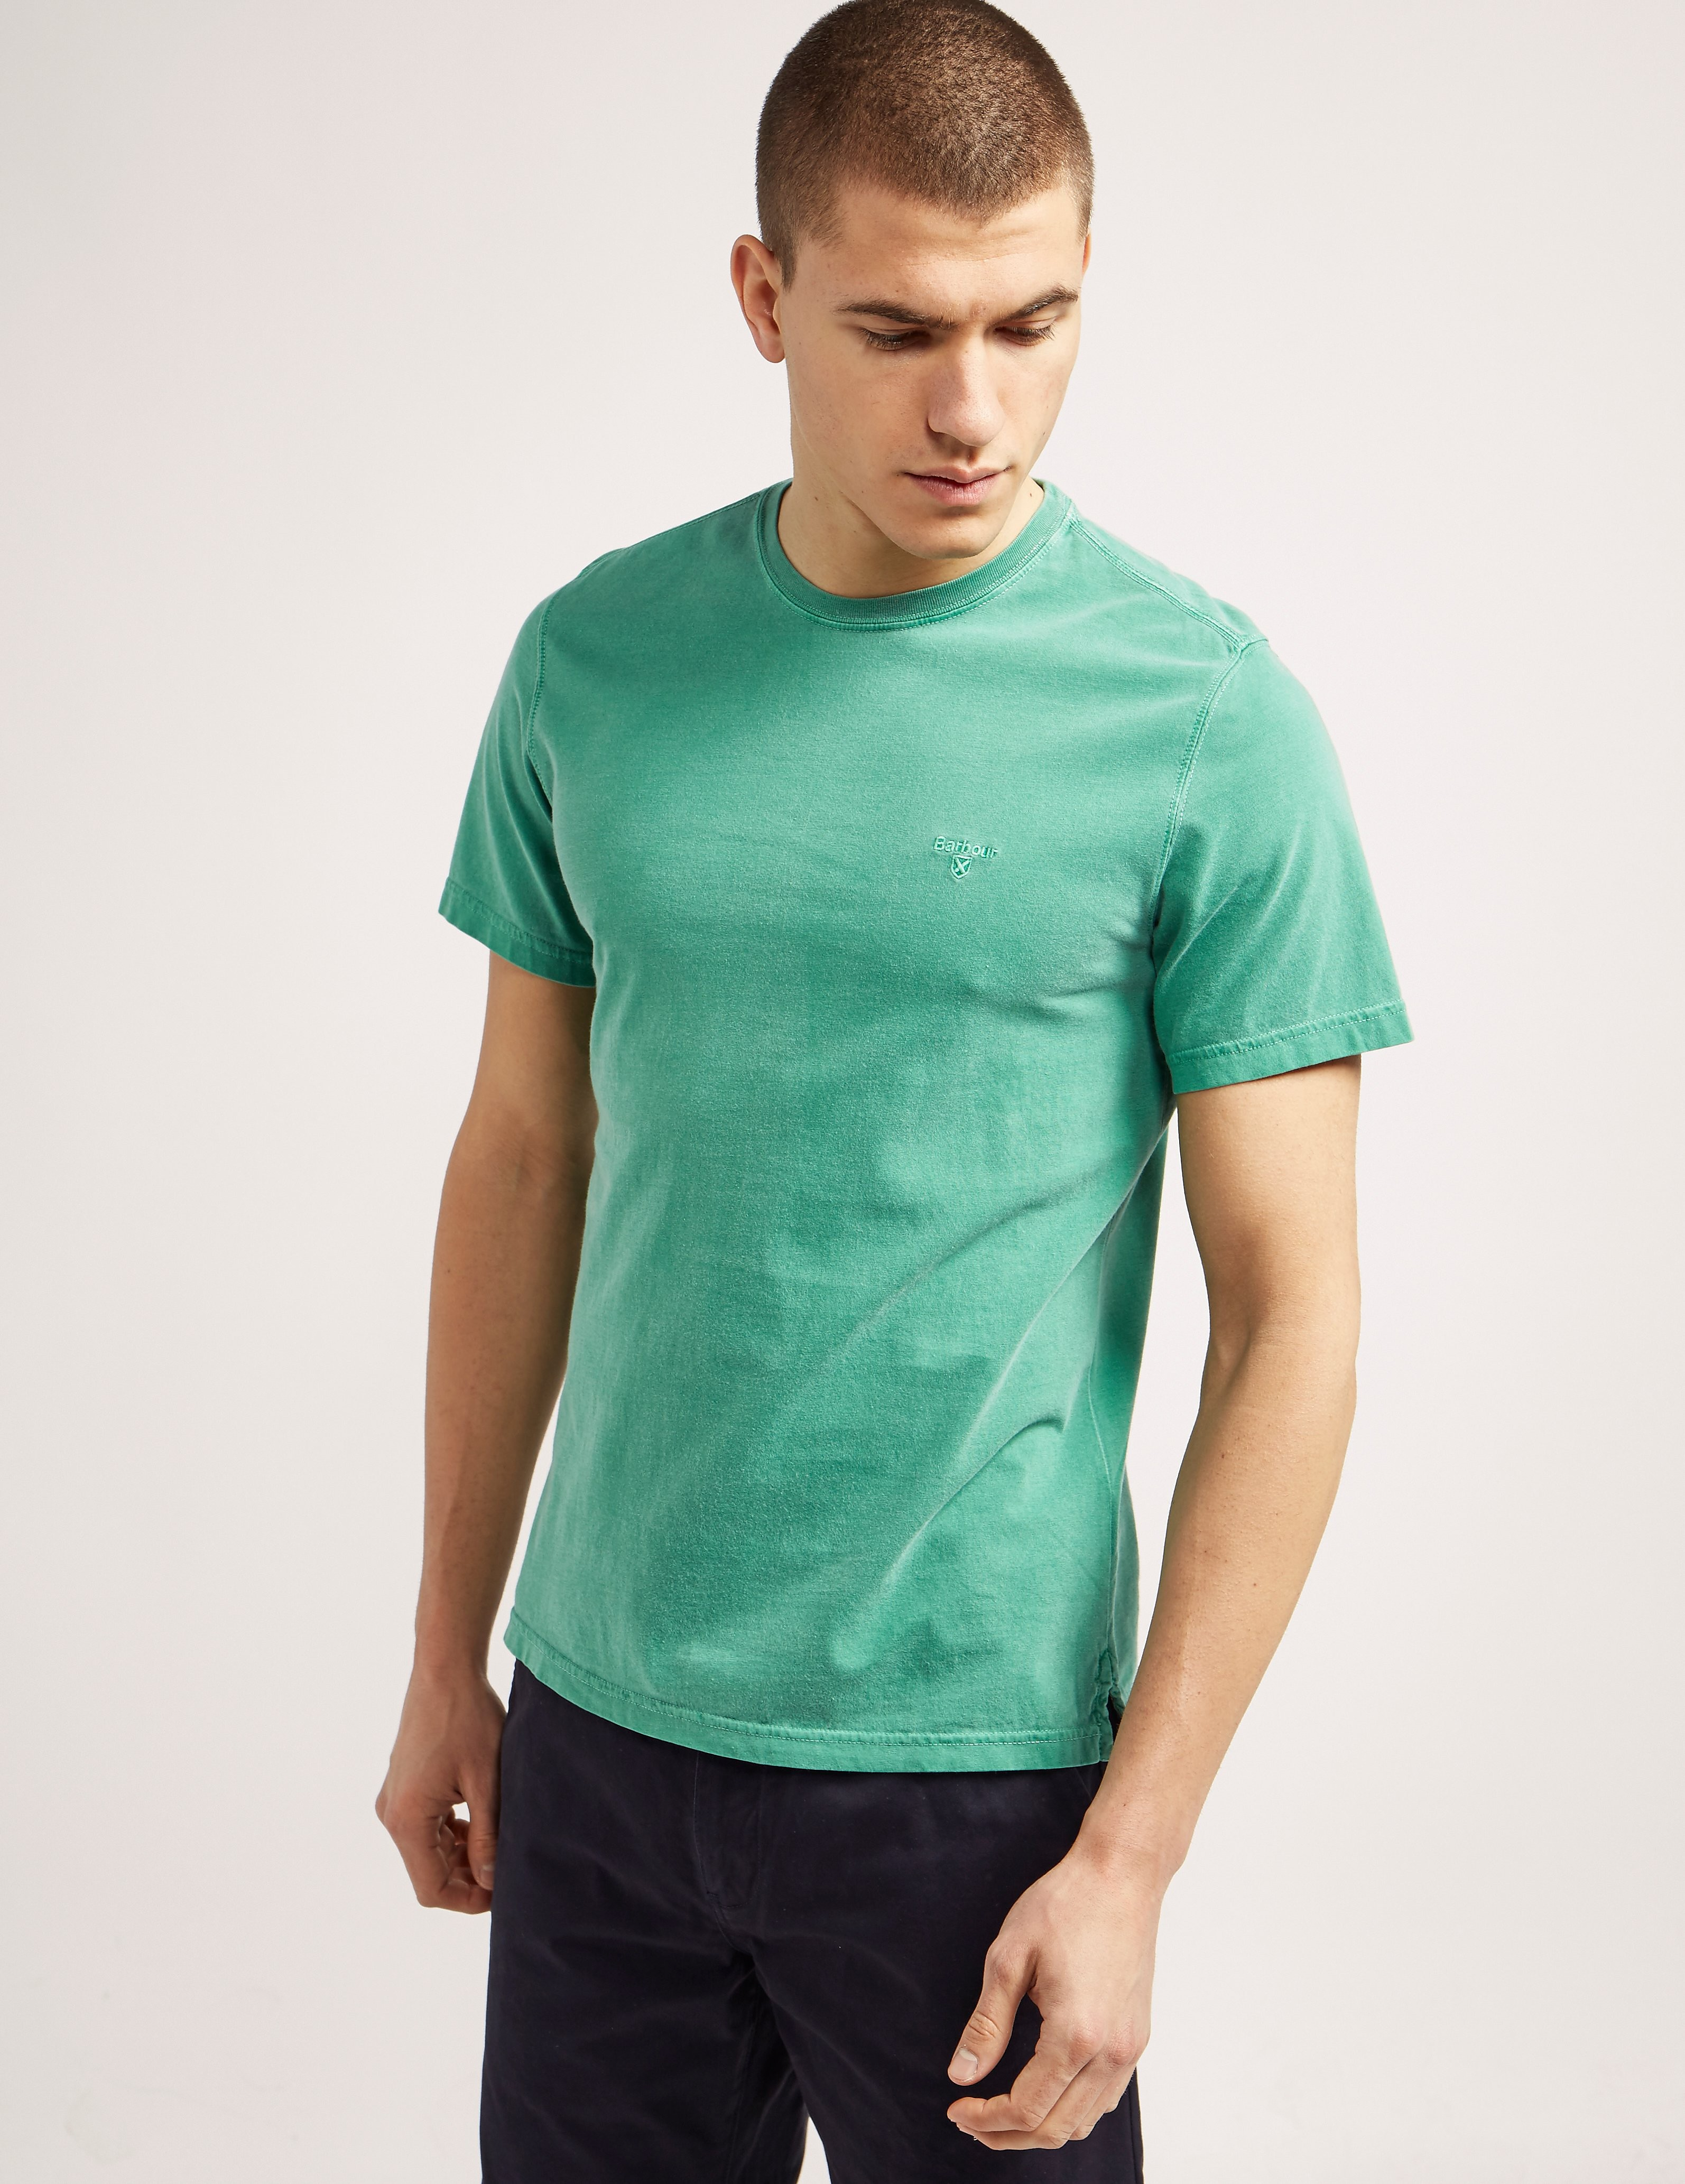 Barbour Garment Dyed Short Sleeve T-Shirt